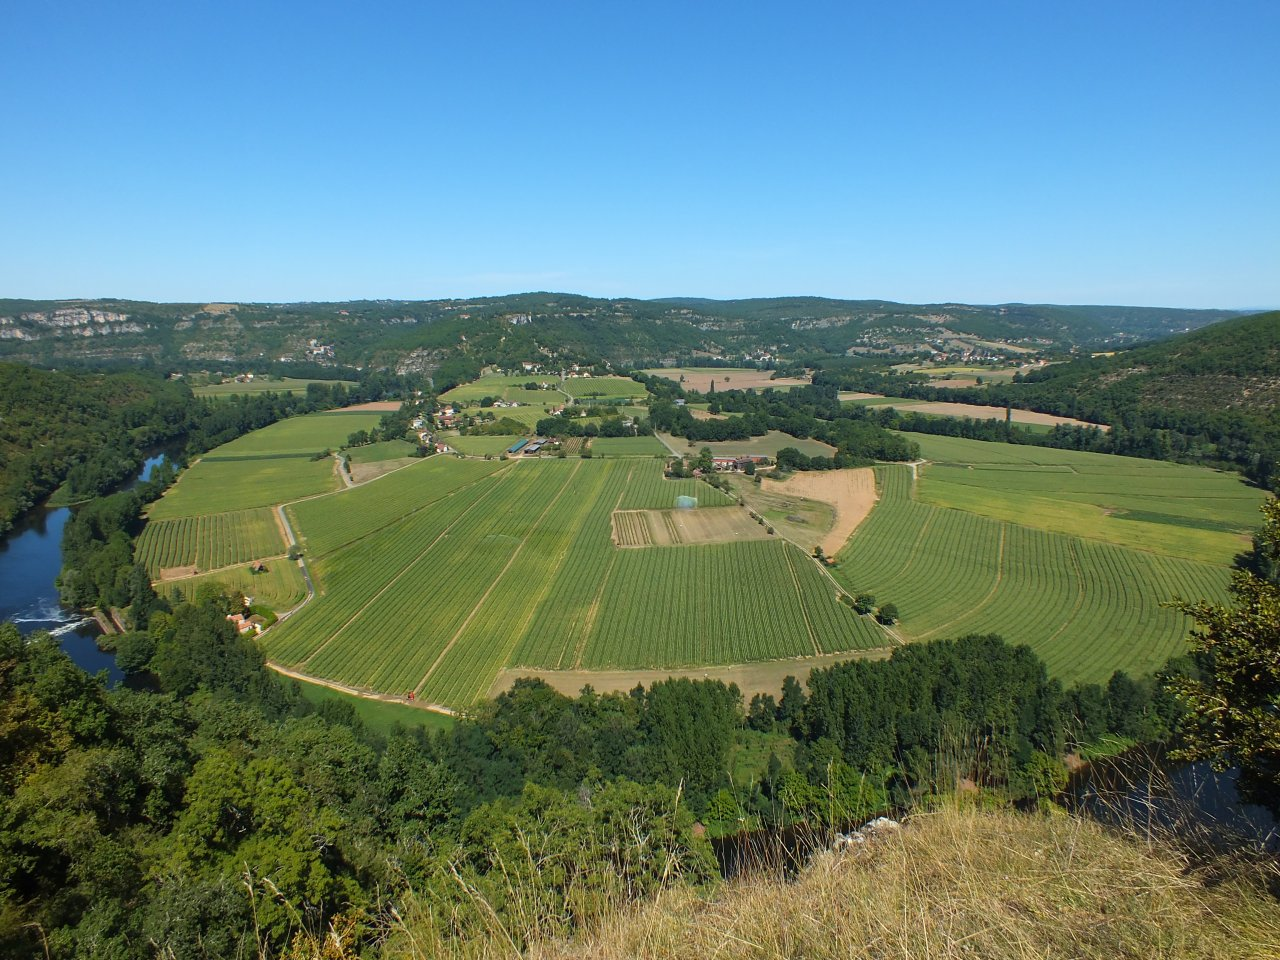 Le cingle de Caillac à Montbrun dans le Lot